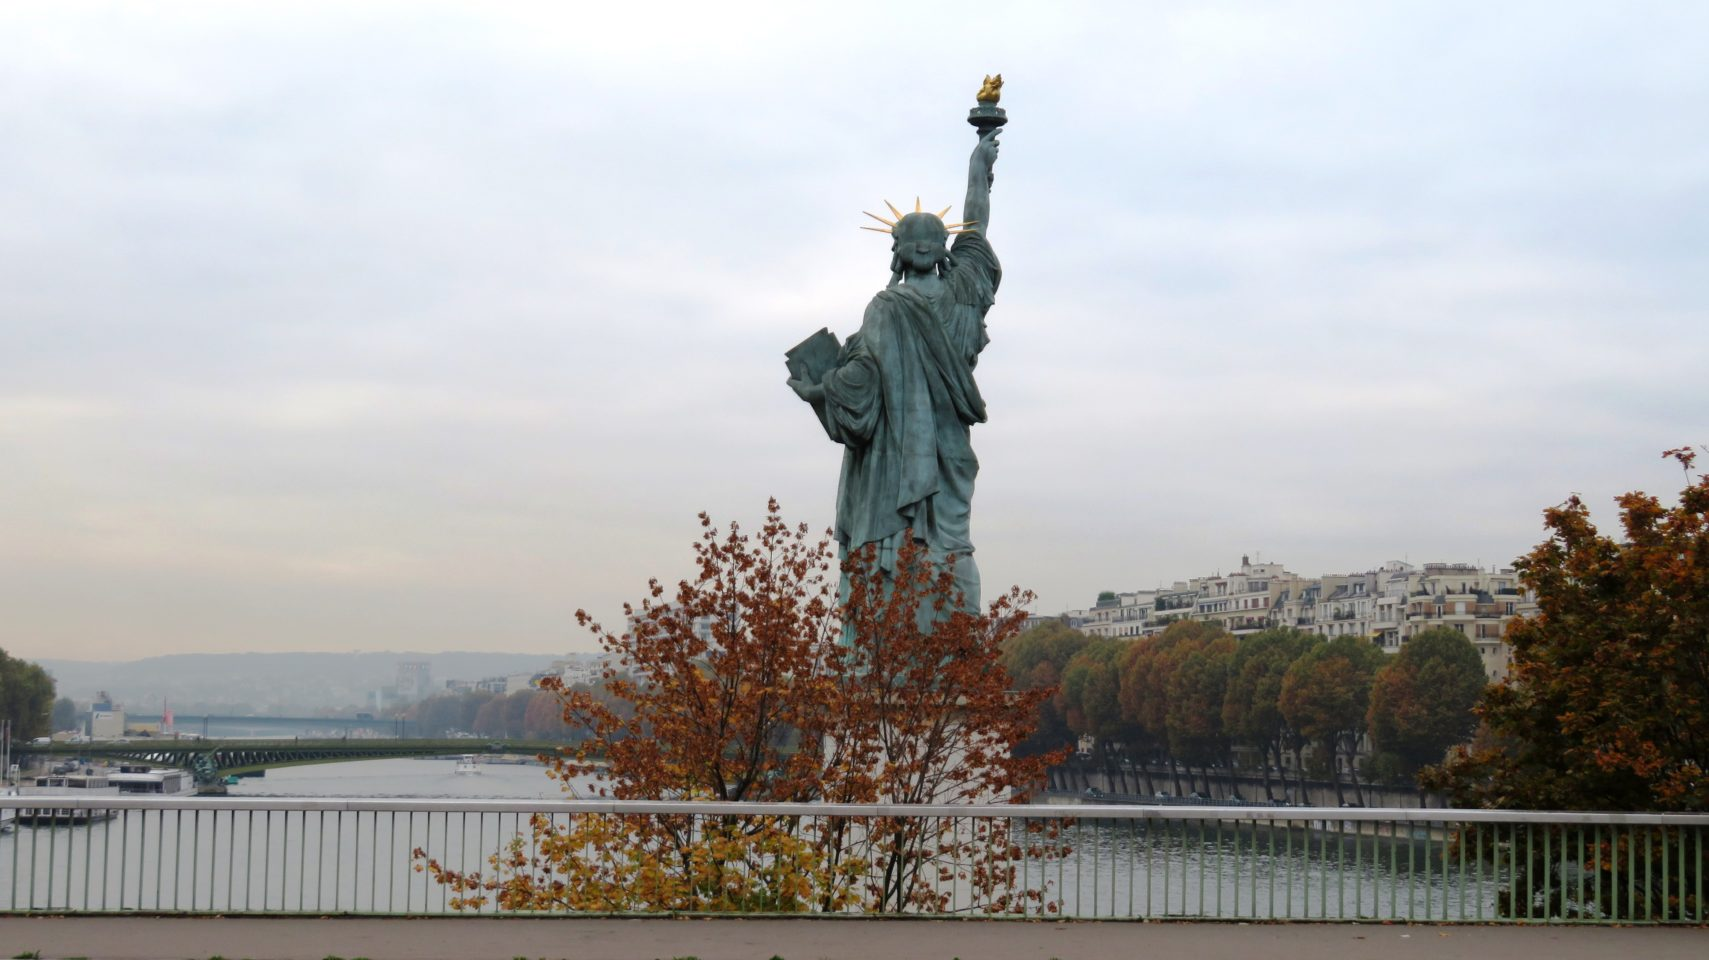 The Statue of Liberty greets visitors to Paris, France (Paris and Normandie AMAWaterways Cruise)